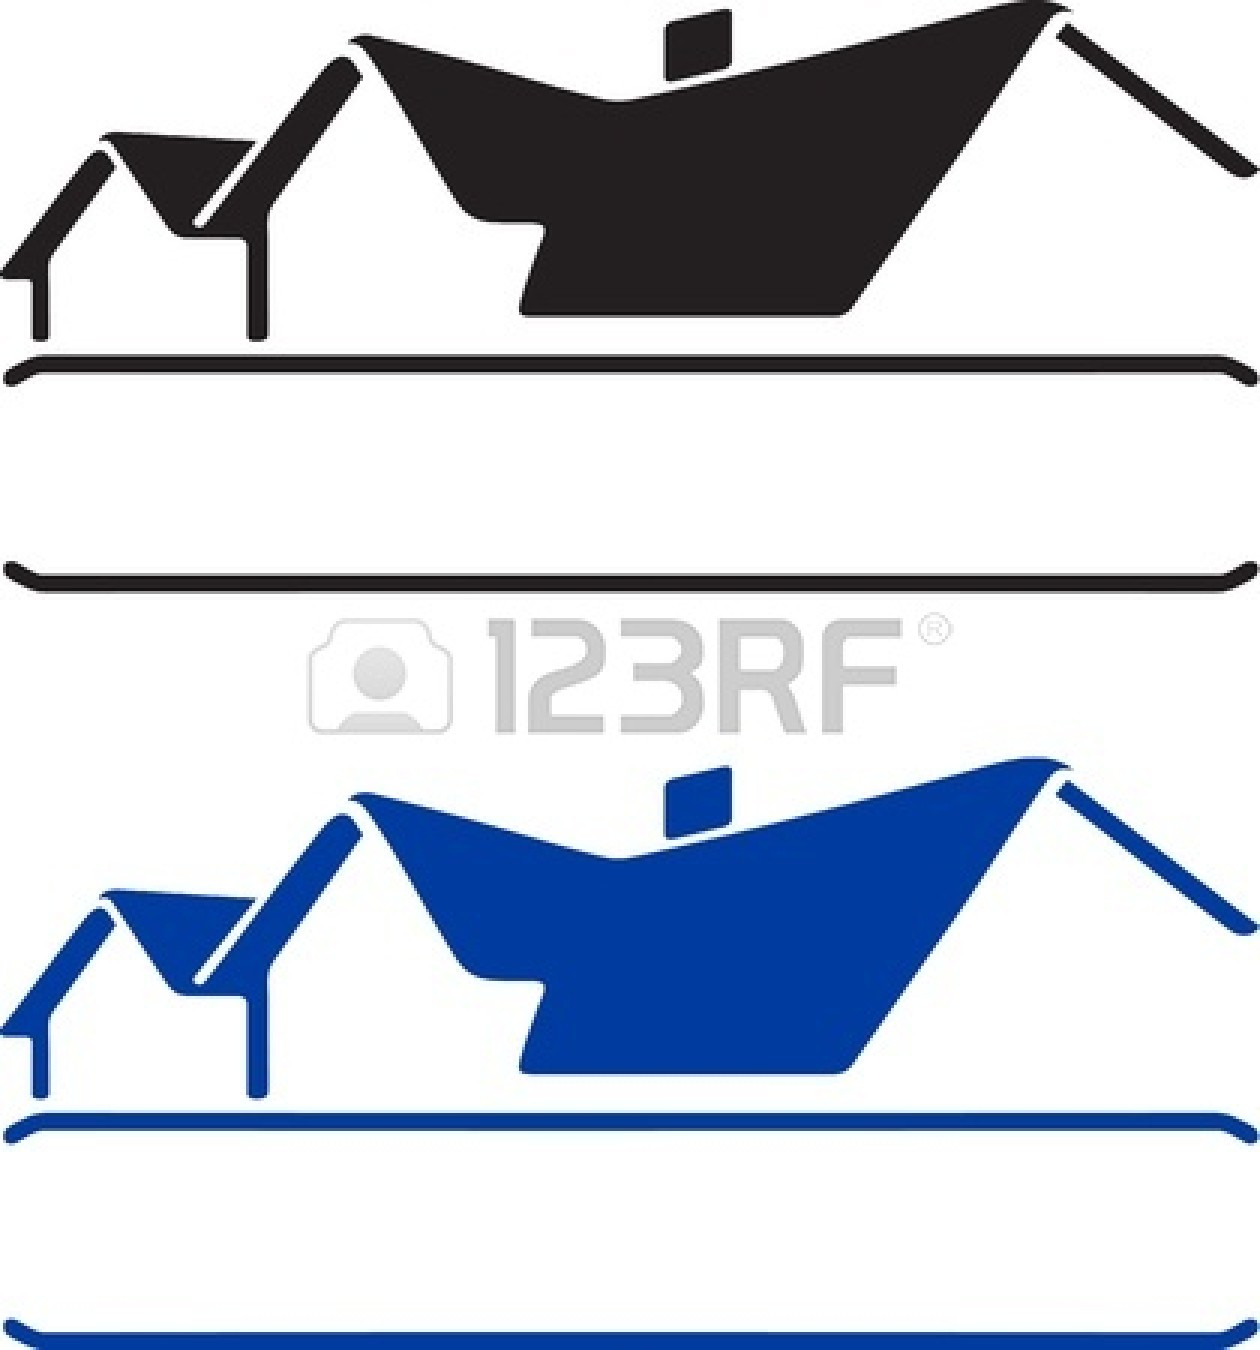 1260x1350 Roof Clipart House Roof